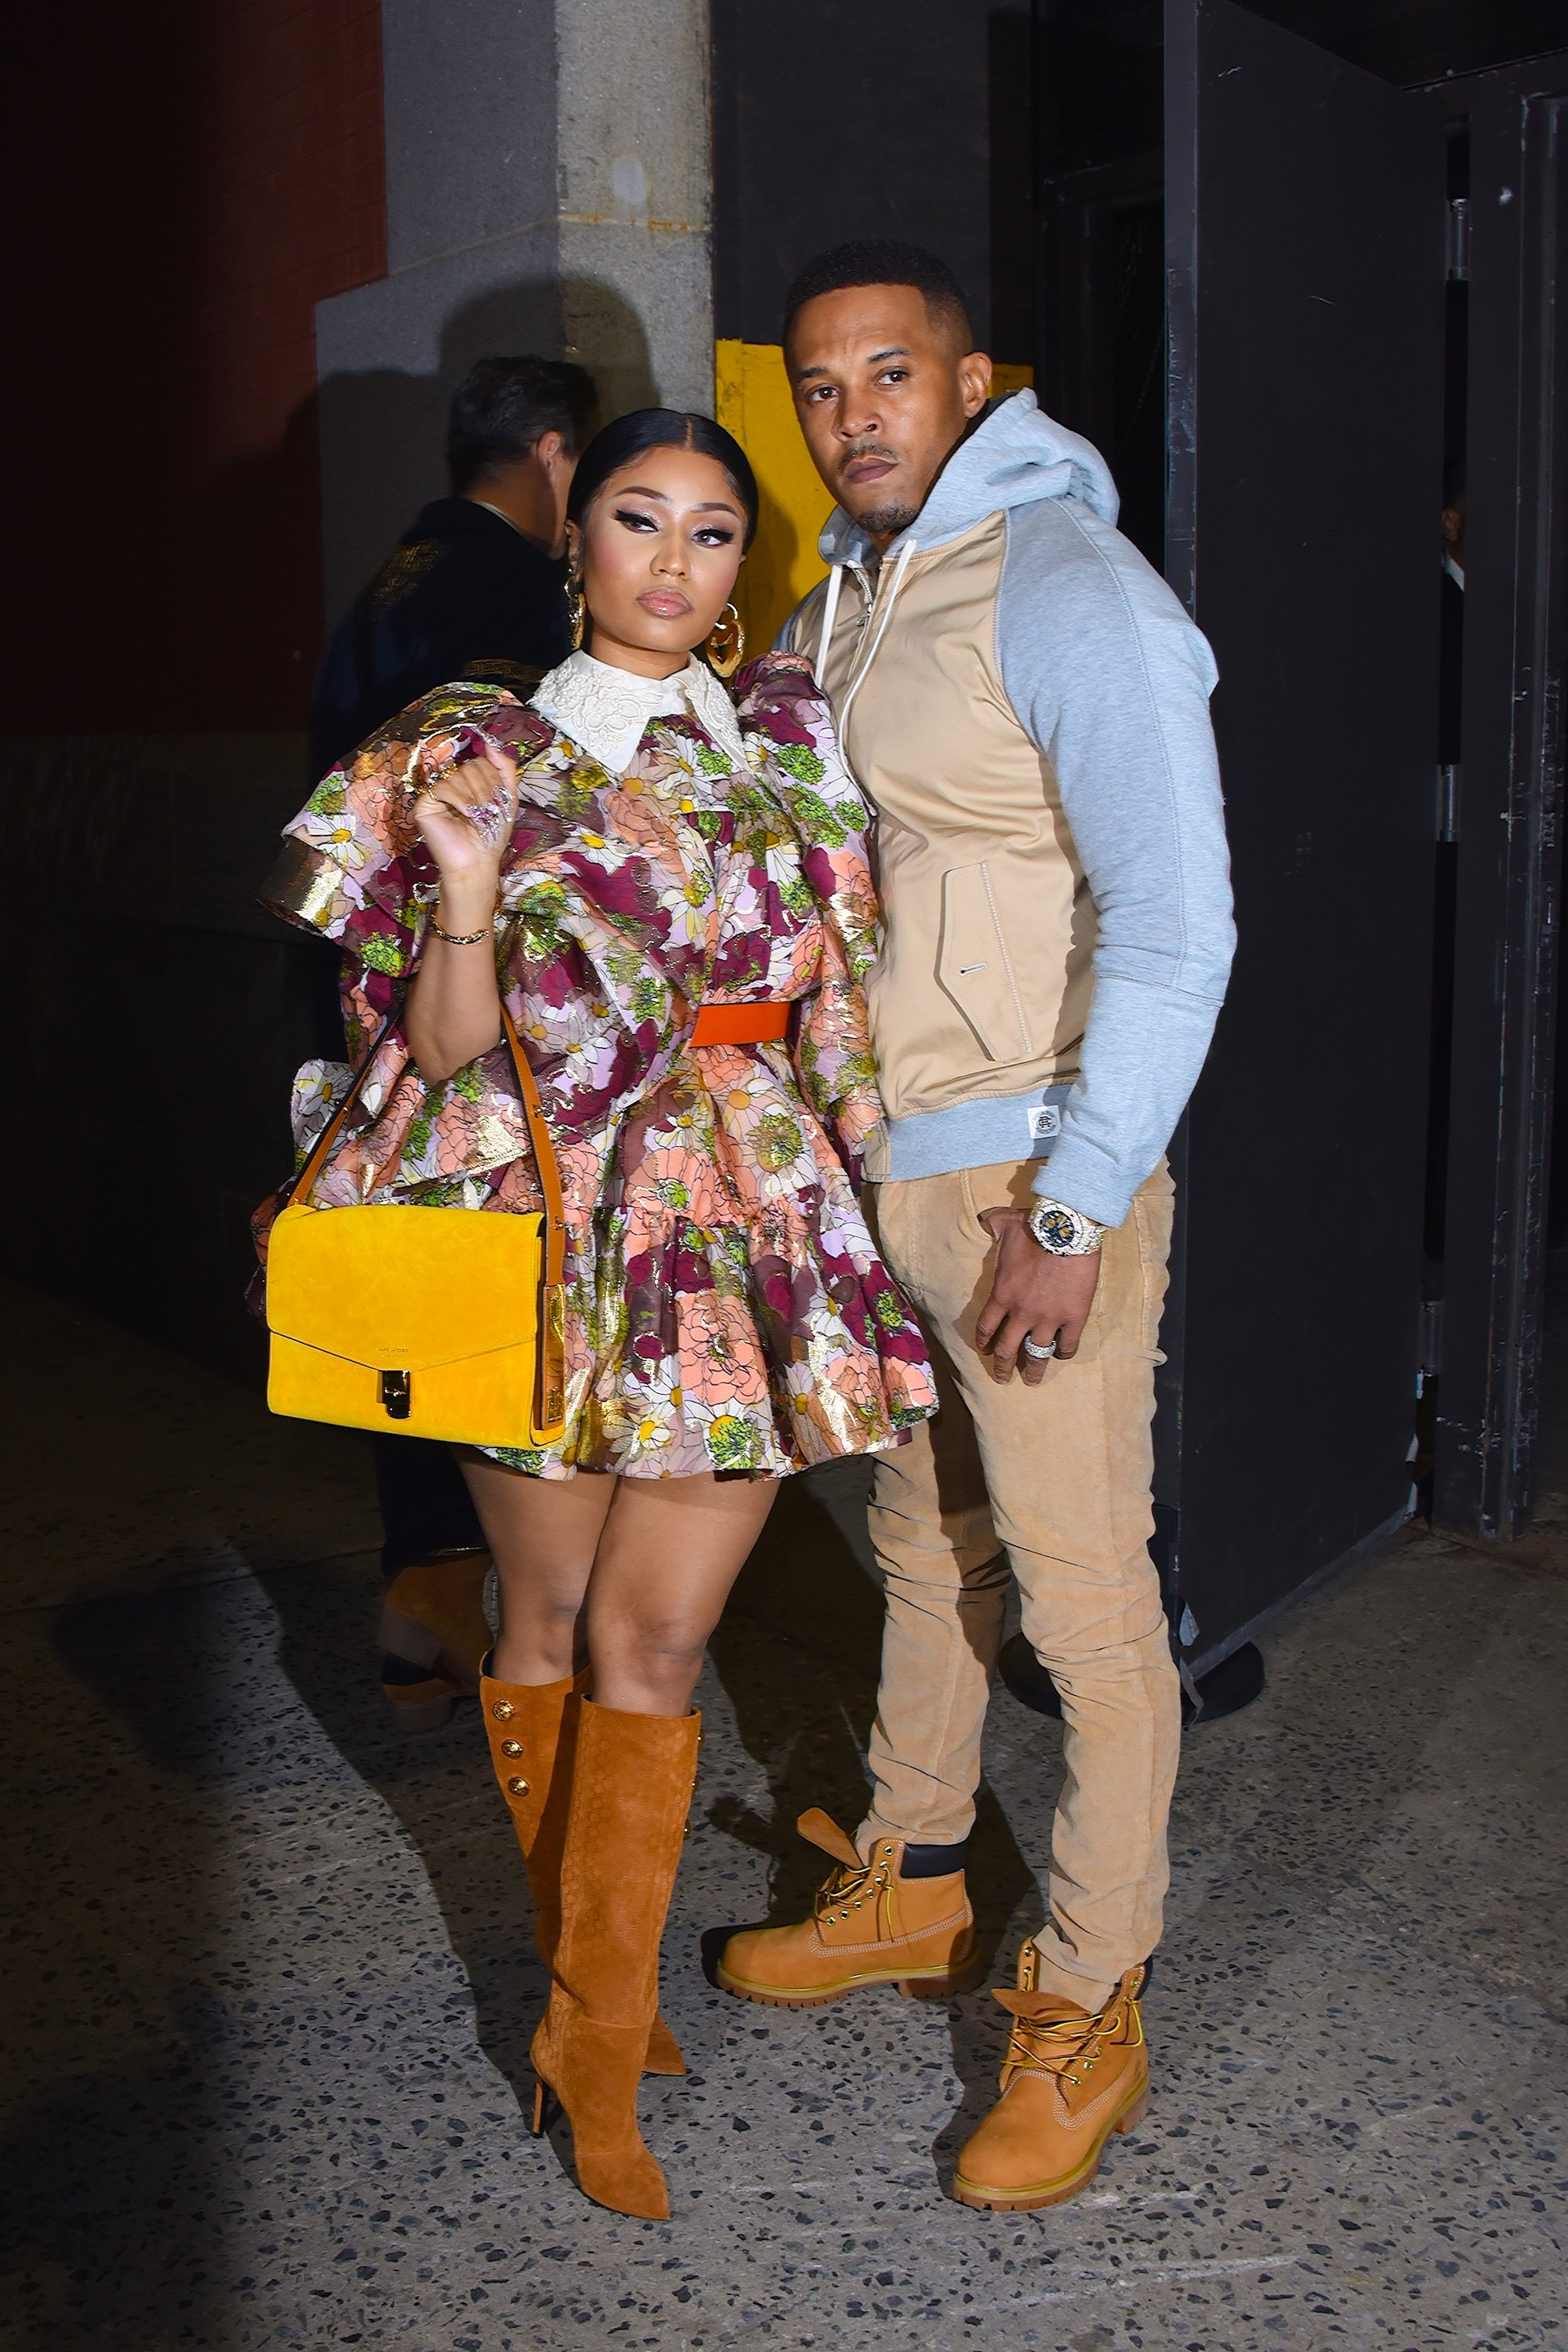 Nicki Minaj and husband Kenneth Petty seen at a Marc Jacobs NYFW event in Manhattan on February 12, 2020 in New York City | Photo: GettyImages